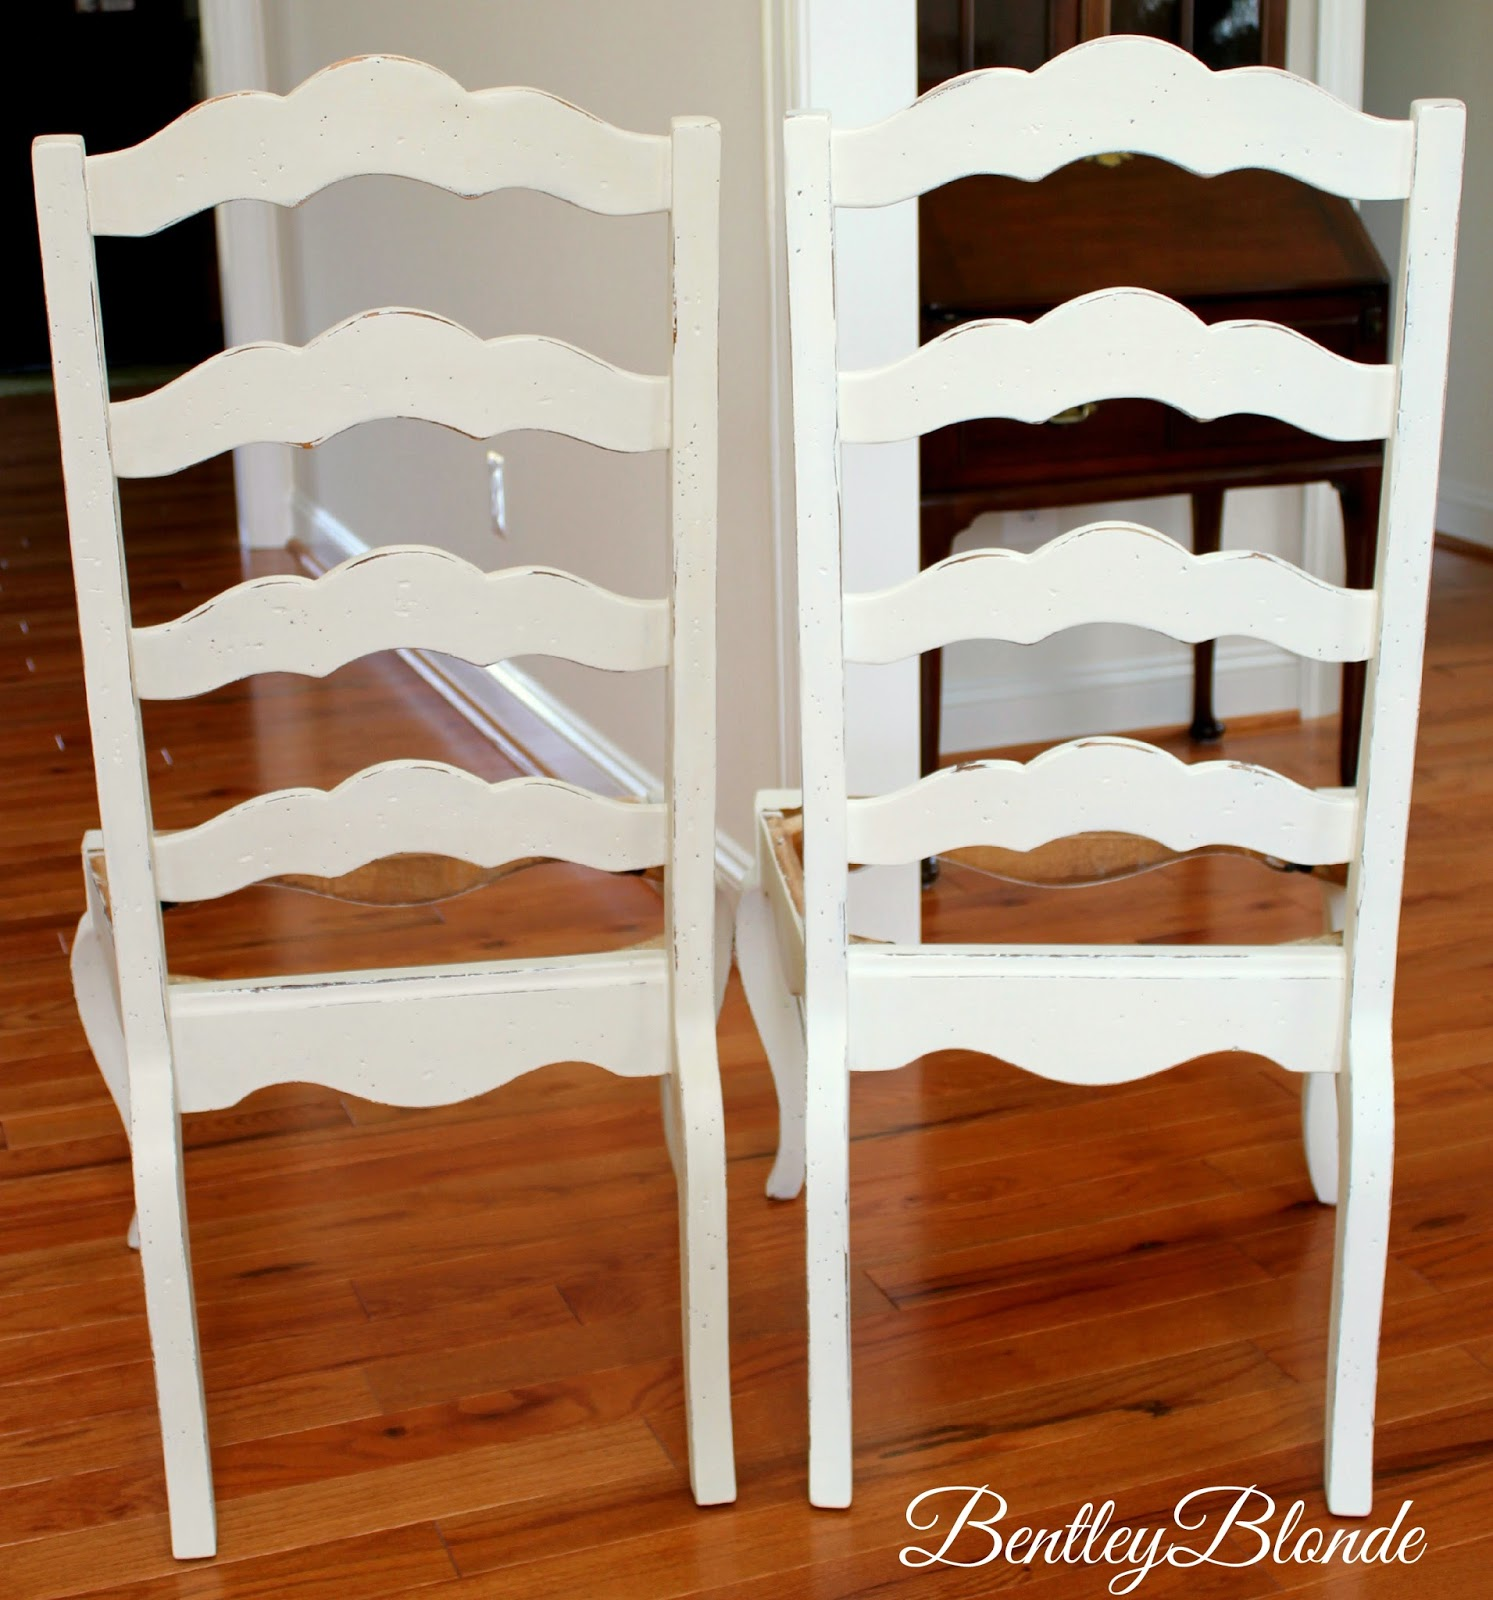 Painted ladder back chairs - Here Are 2 Of My Dining Chairs The Left Chair Is Painted In Old Ochre And The Right Is Painted In Old White As You Can See Old Ochre Is Just A